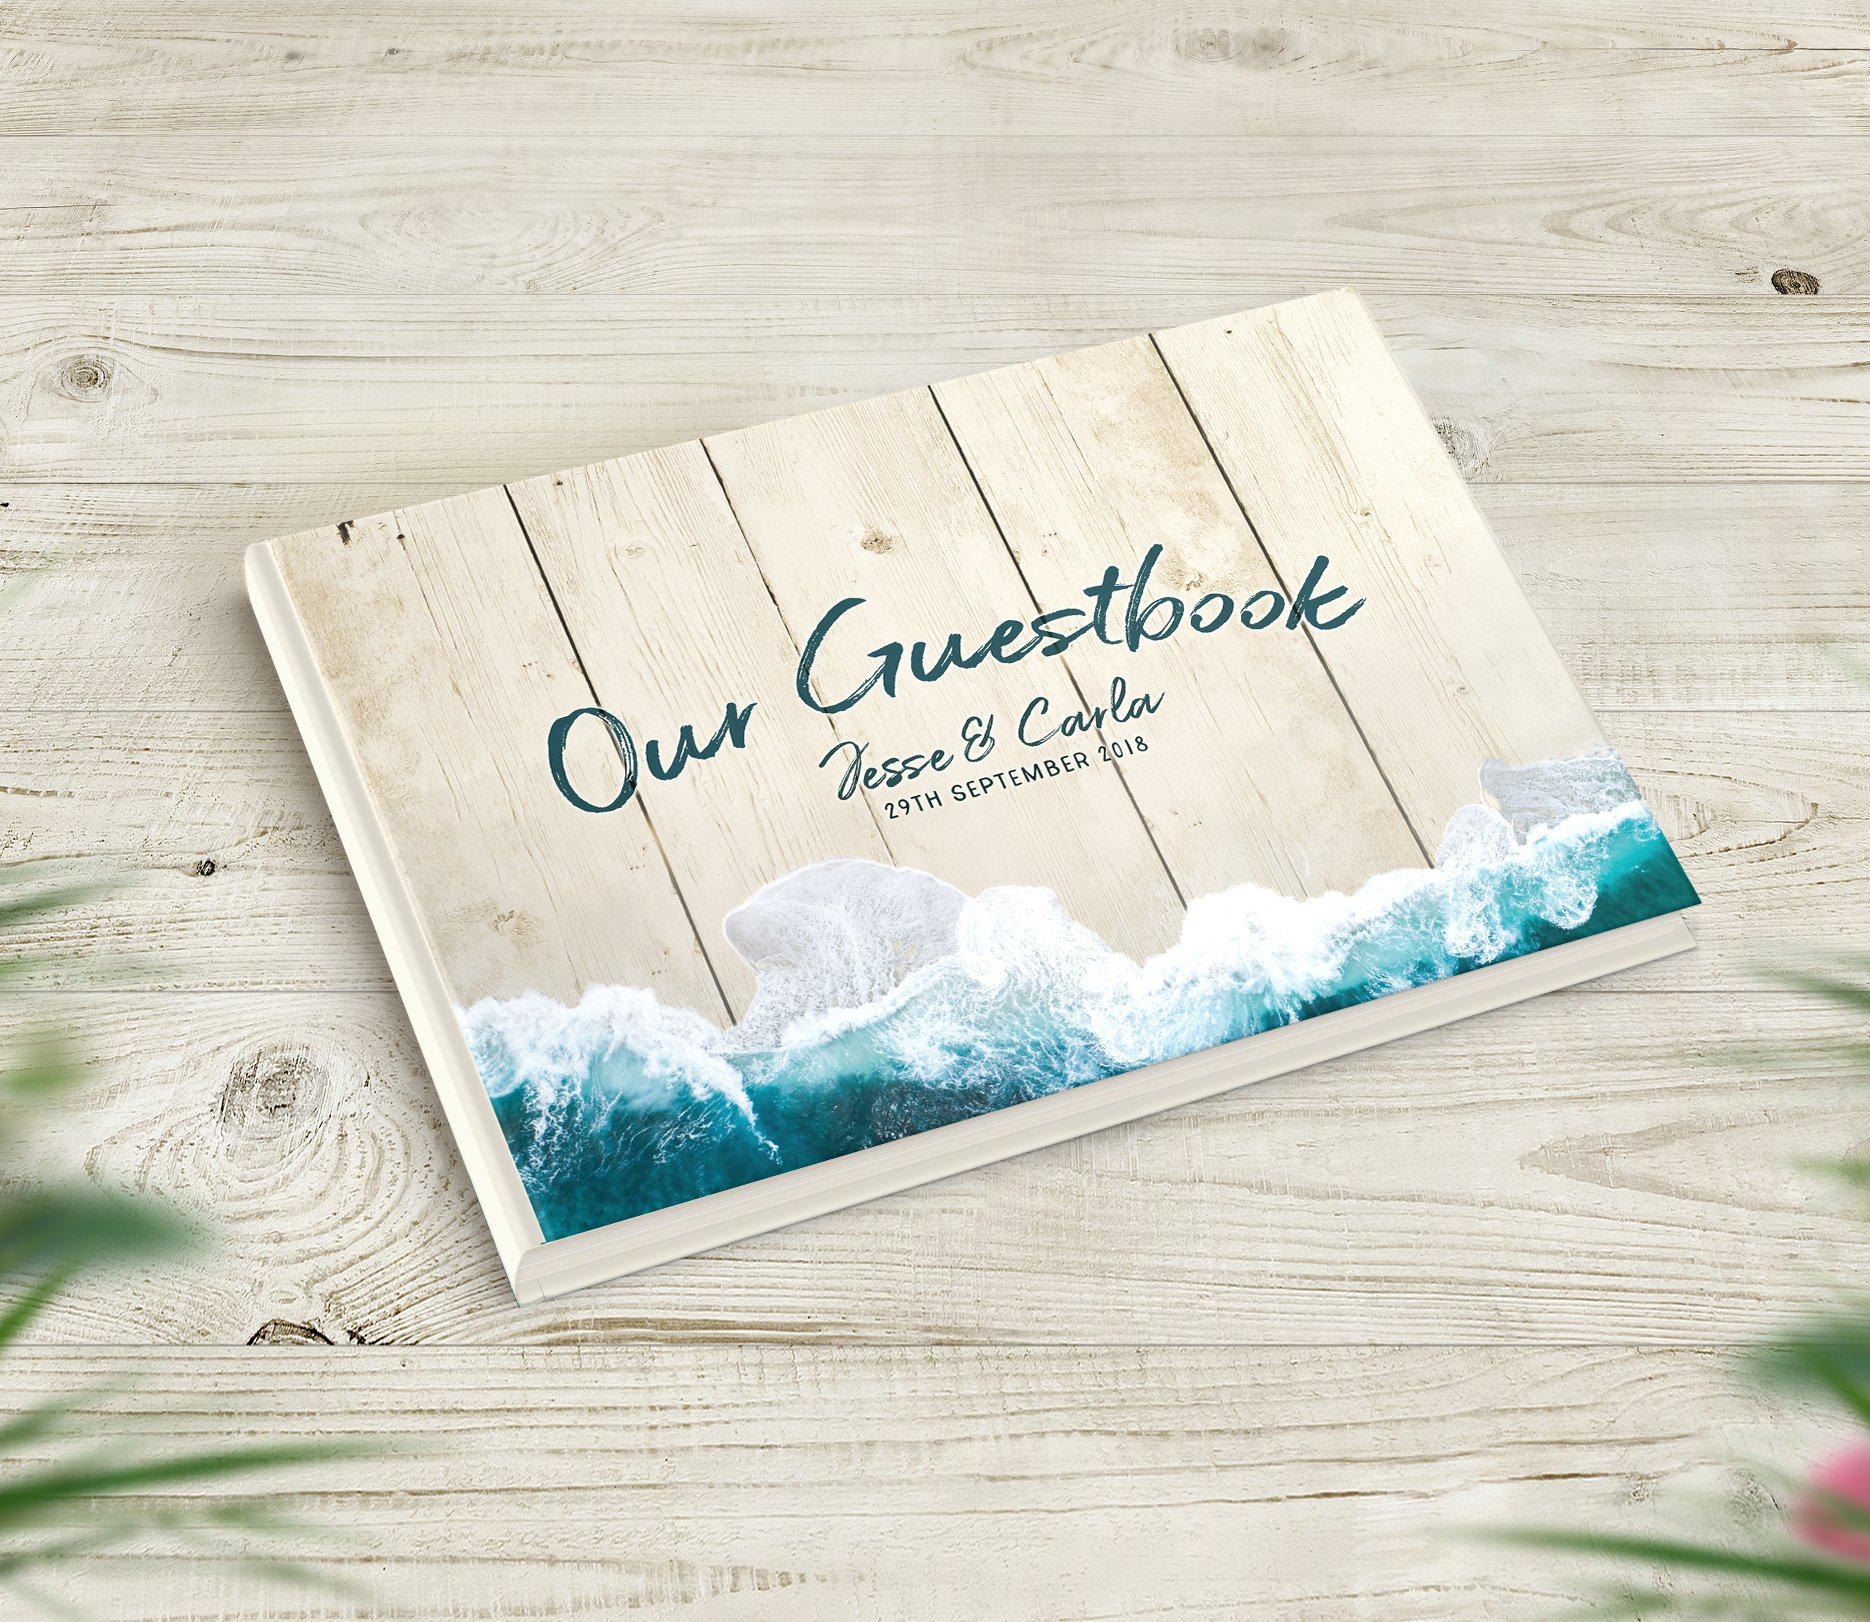 368b5b38b A beautiful Beach Themed Wedding Guestbook Guestbook that includes your  personalised text on the cover.